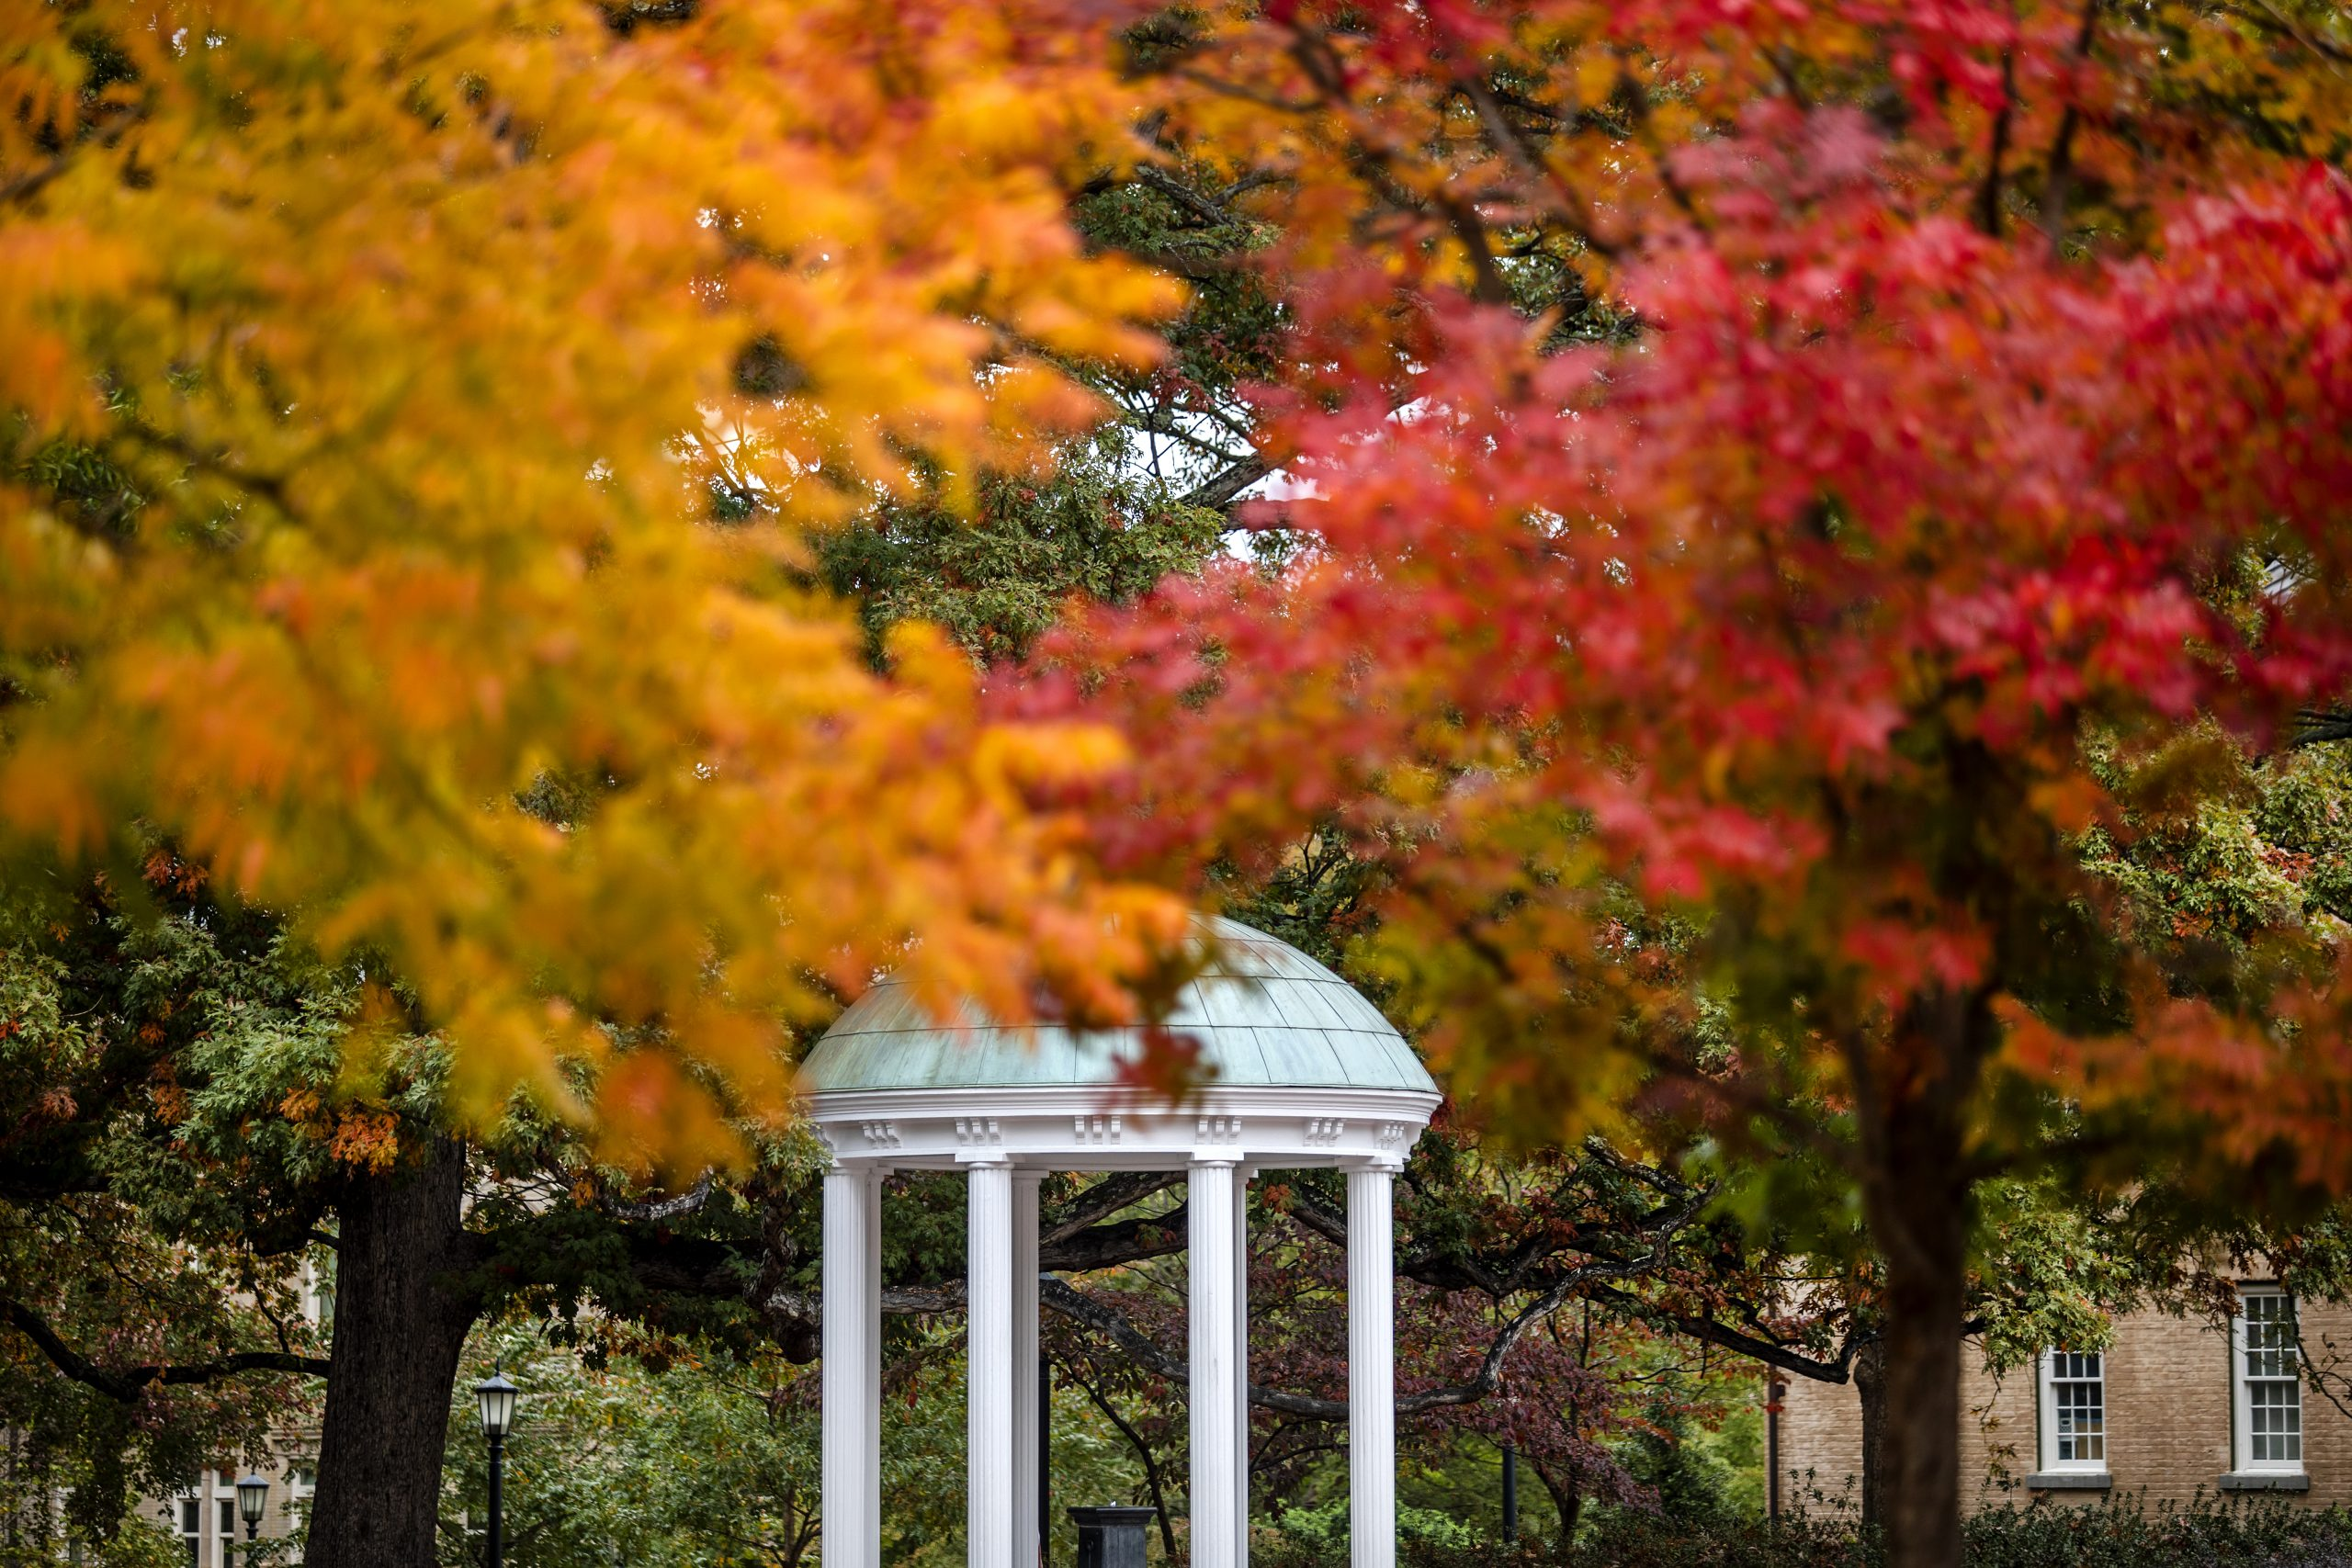 The Old Well in autumn